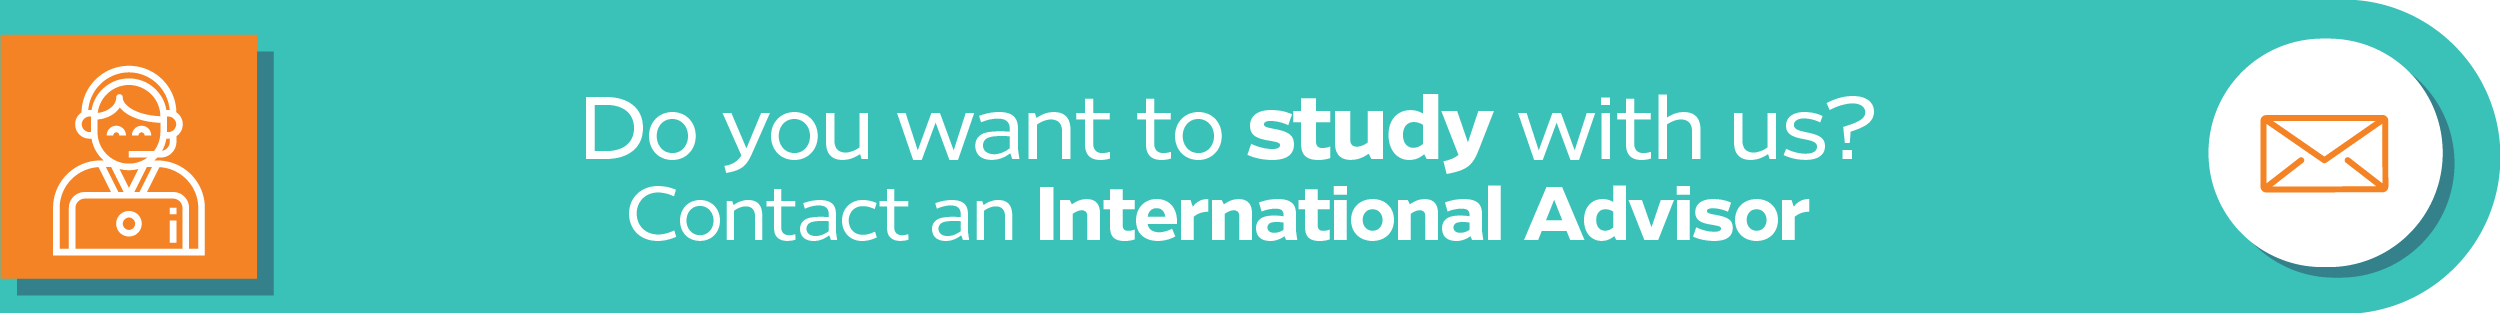 Contact an international advisor - study in mexico